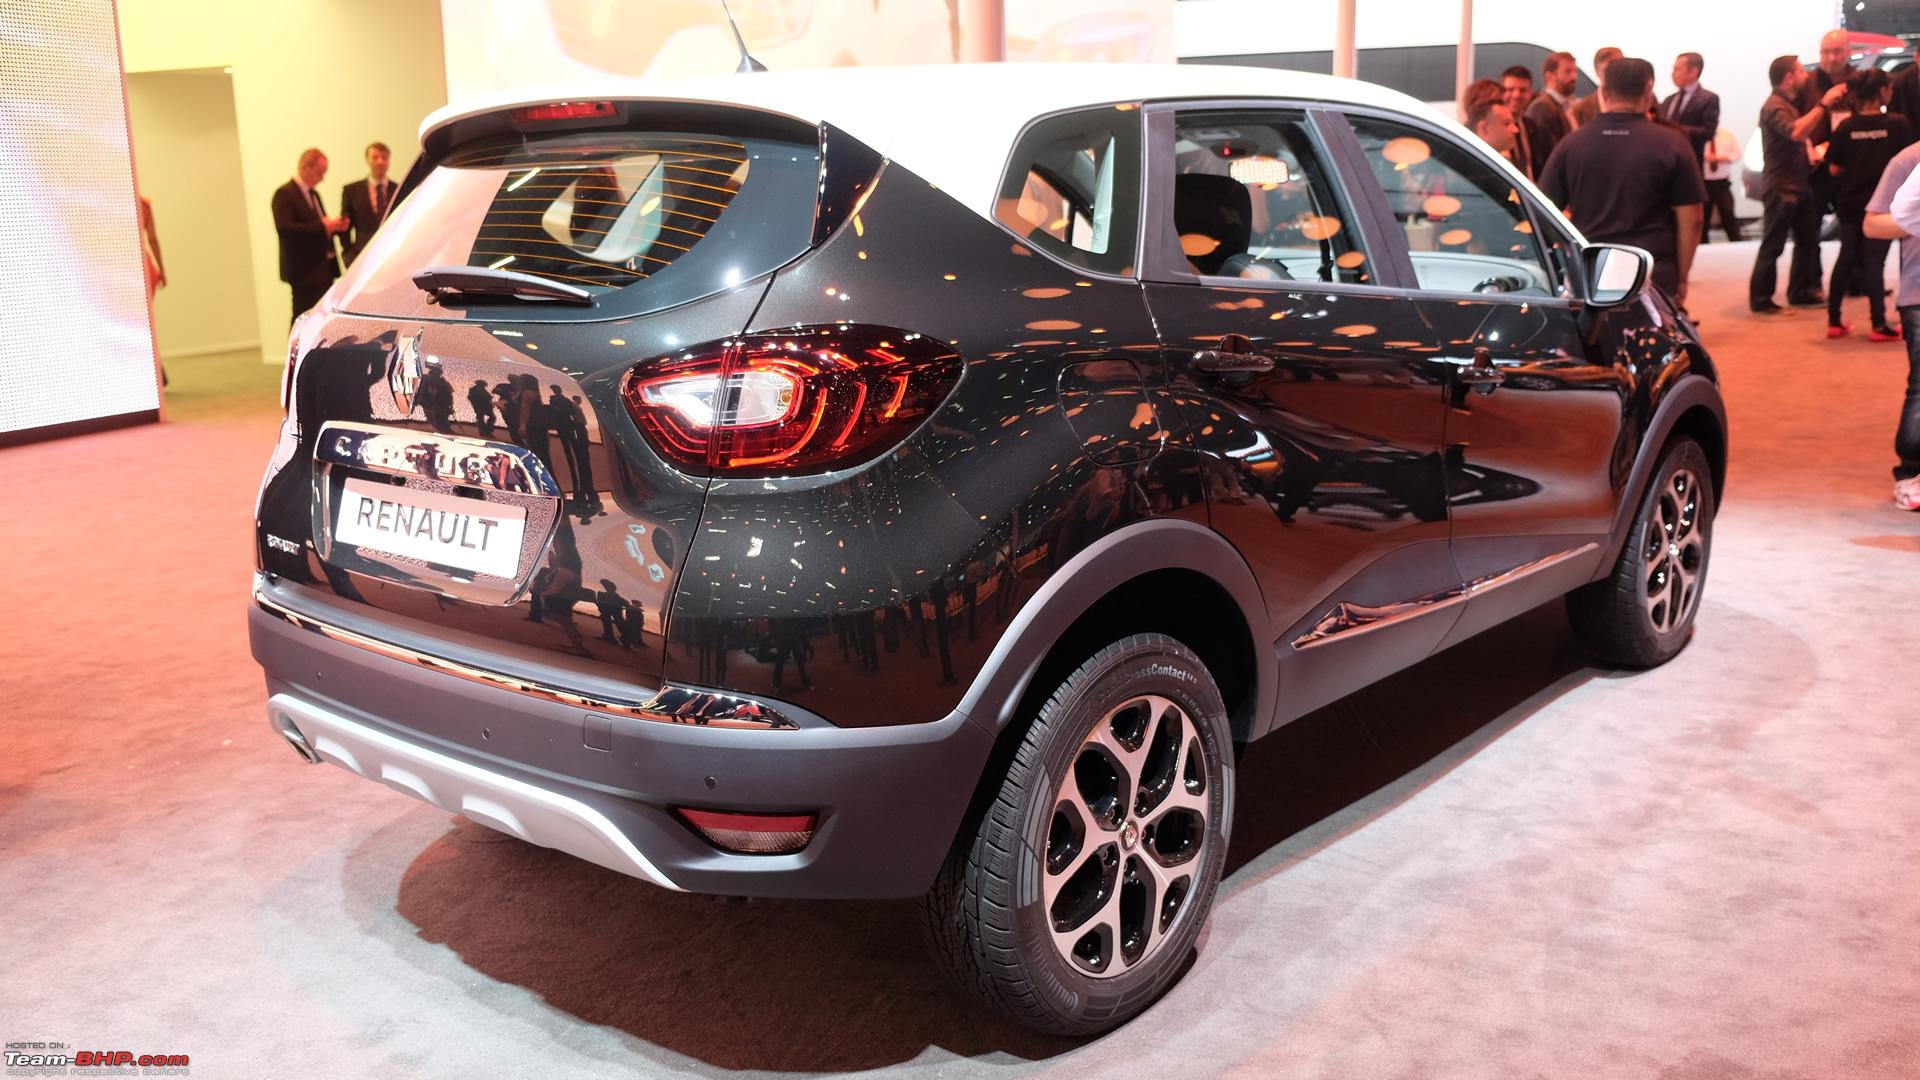 Renault teases captur suv now unveiled in india 2 jpg